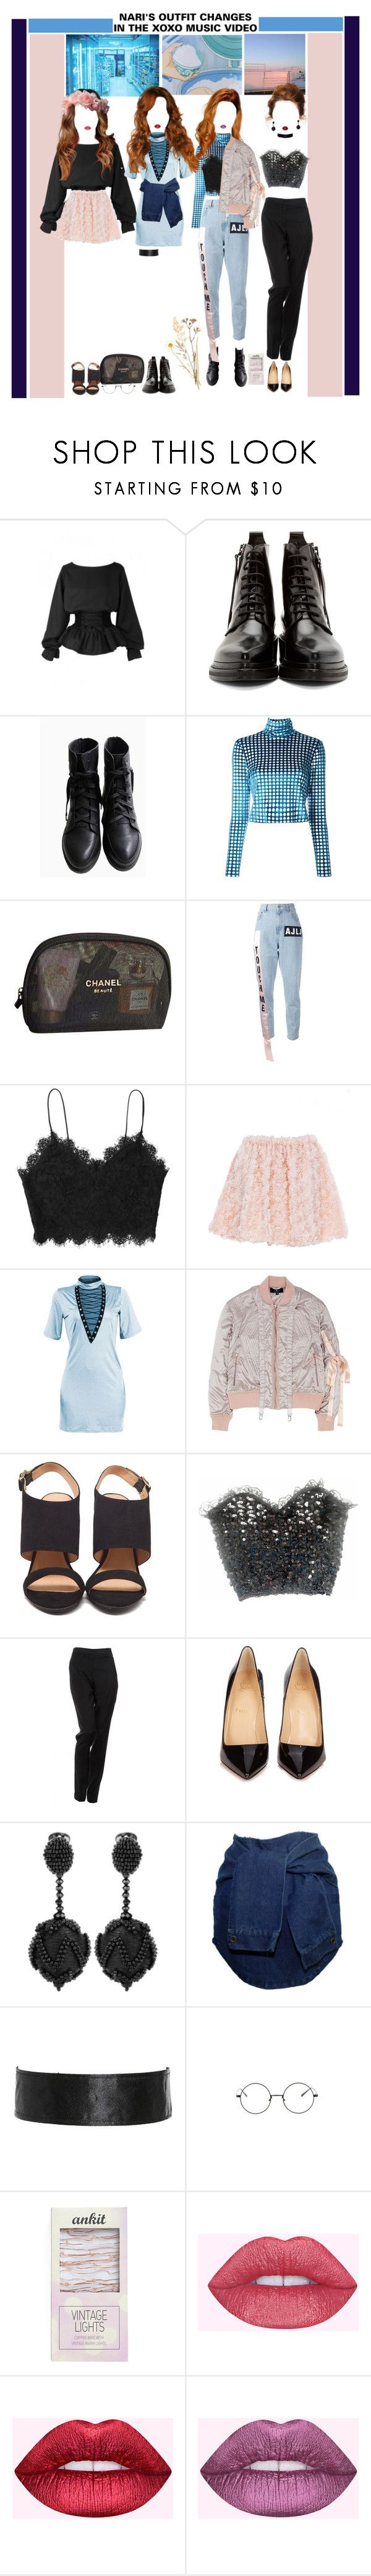 """«OUTFIT CHANGES» XOXO MV [NARI] ROCKIT"" by cw-entertainment ❤ liked on Polyvore featuring Acne Studios, House of Holland, Chanel, Au Jour Le Jour, Nicopanda, Rebecca Minkoff, By Malene Birger, Christian Louboutin, Oscar de la Renta and Streamline NYC"